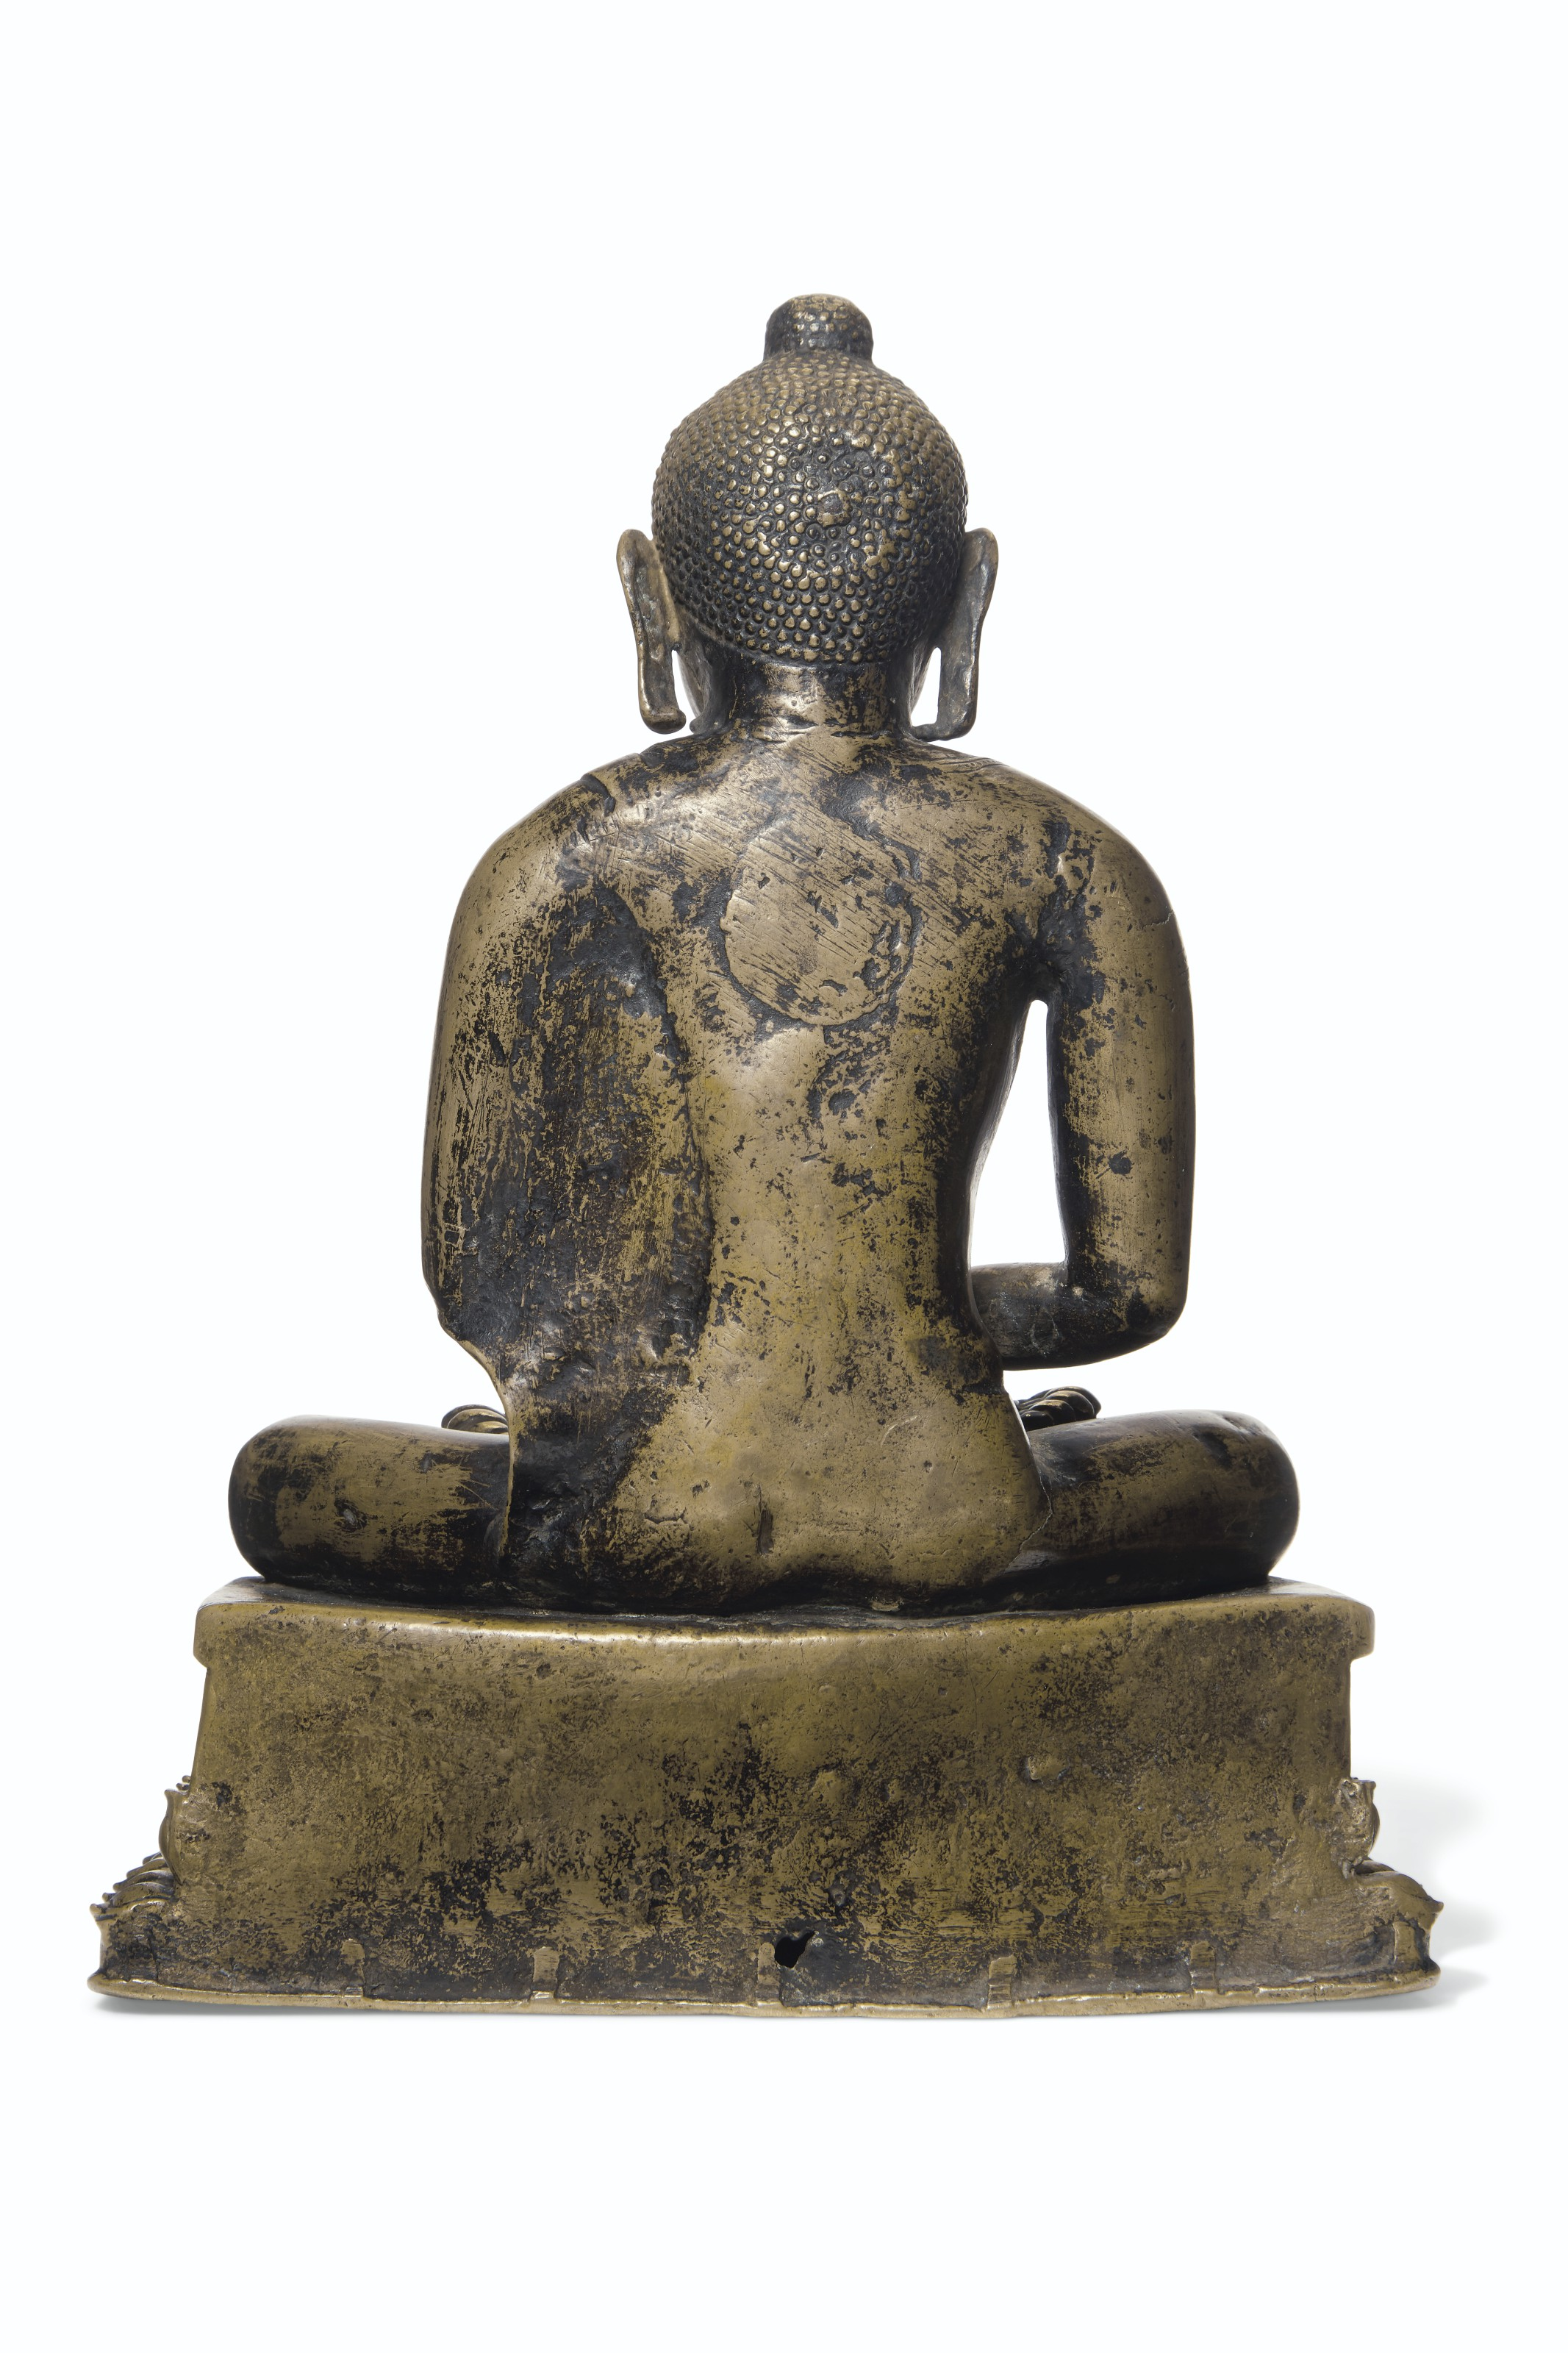 A SILVER- AND COPPER-INLAID BRONZE FIGURE OF A BUDDHA